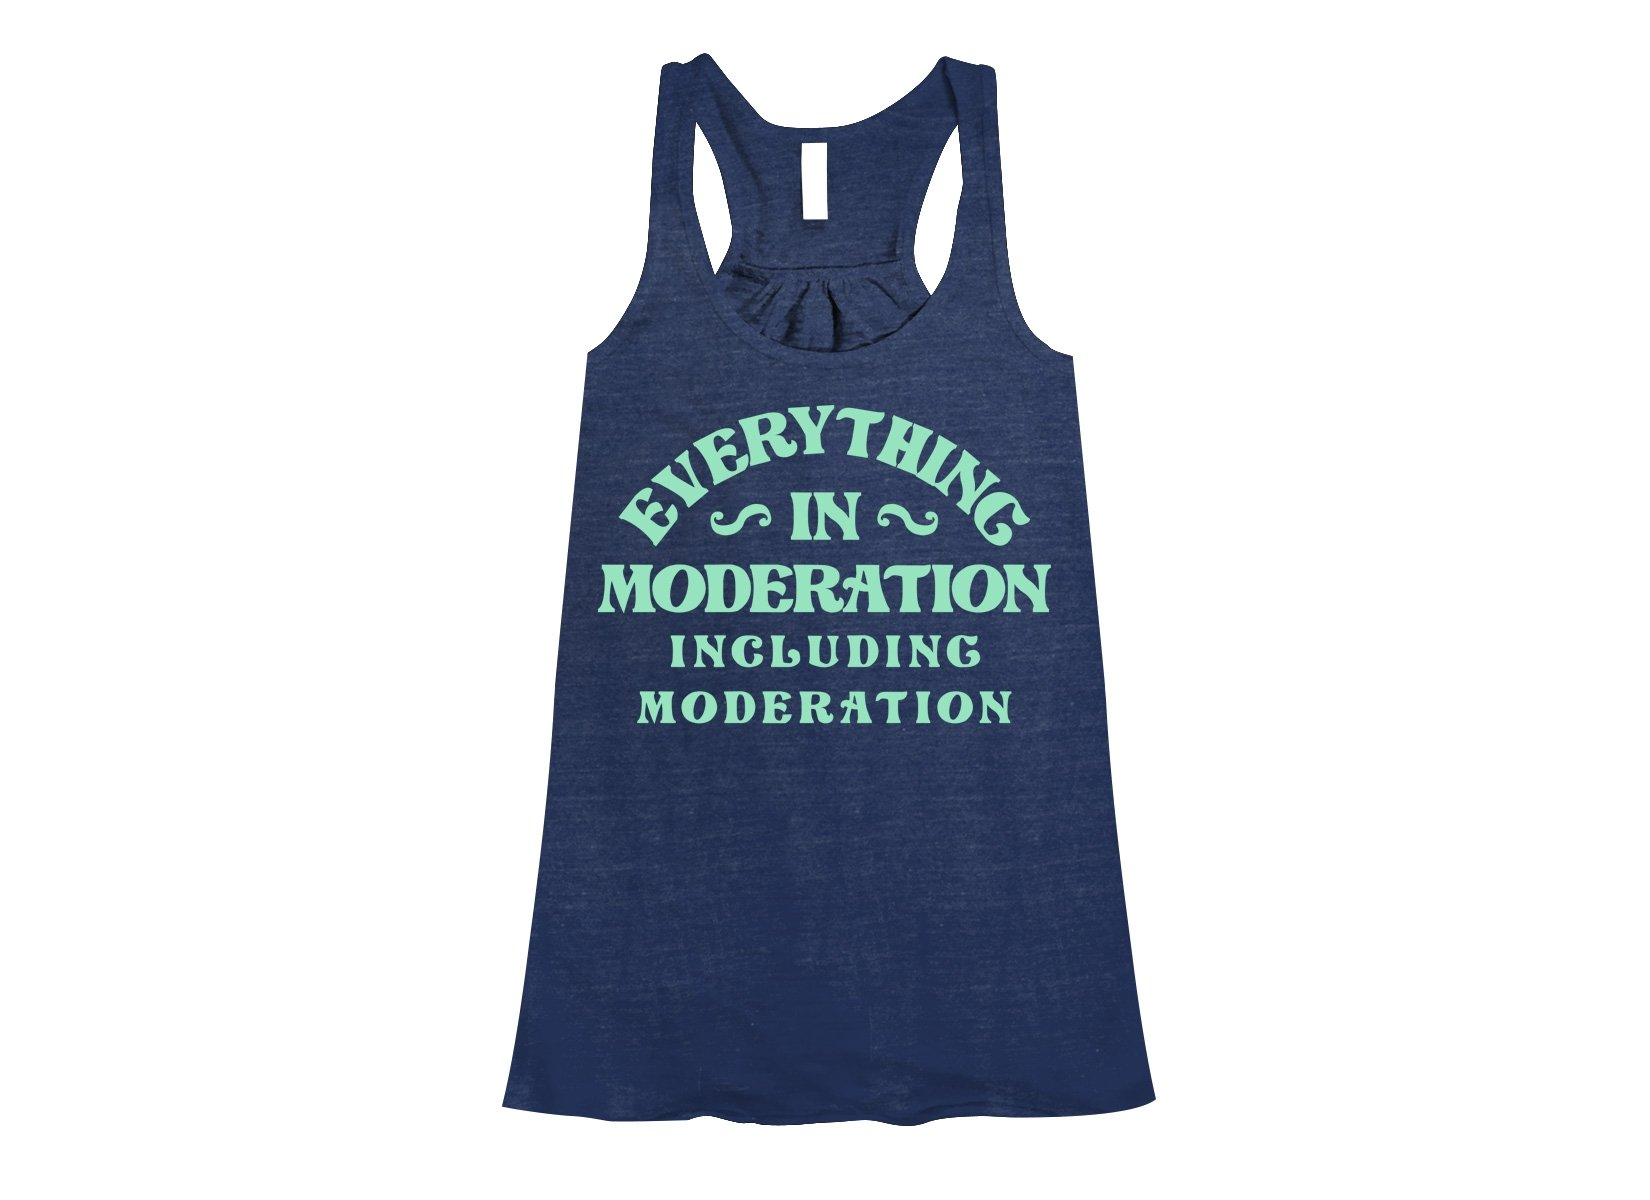 Everything In Moderation Including Moderation on Womens Tanks T-Shirt